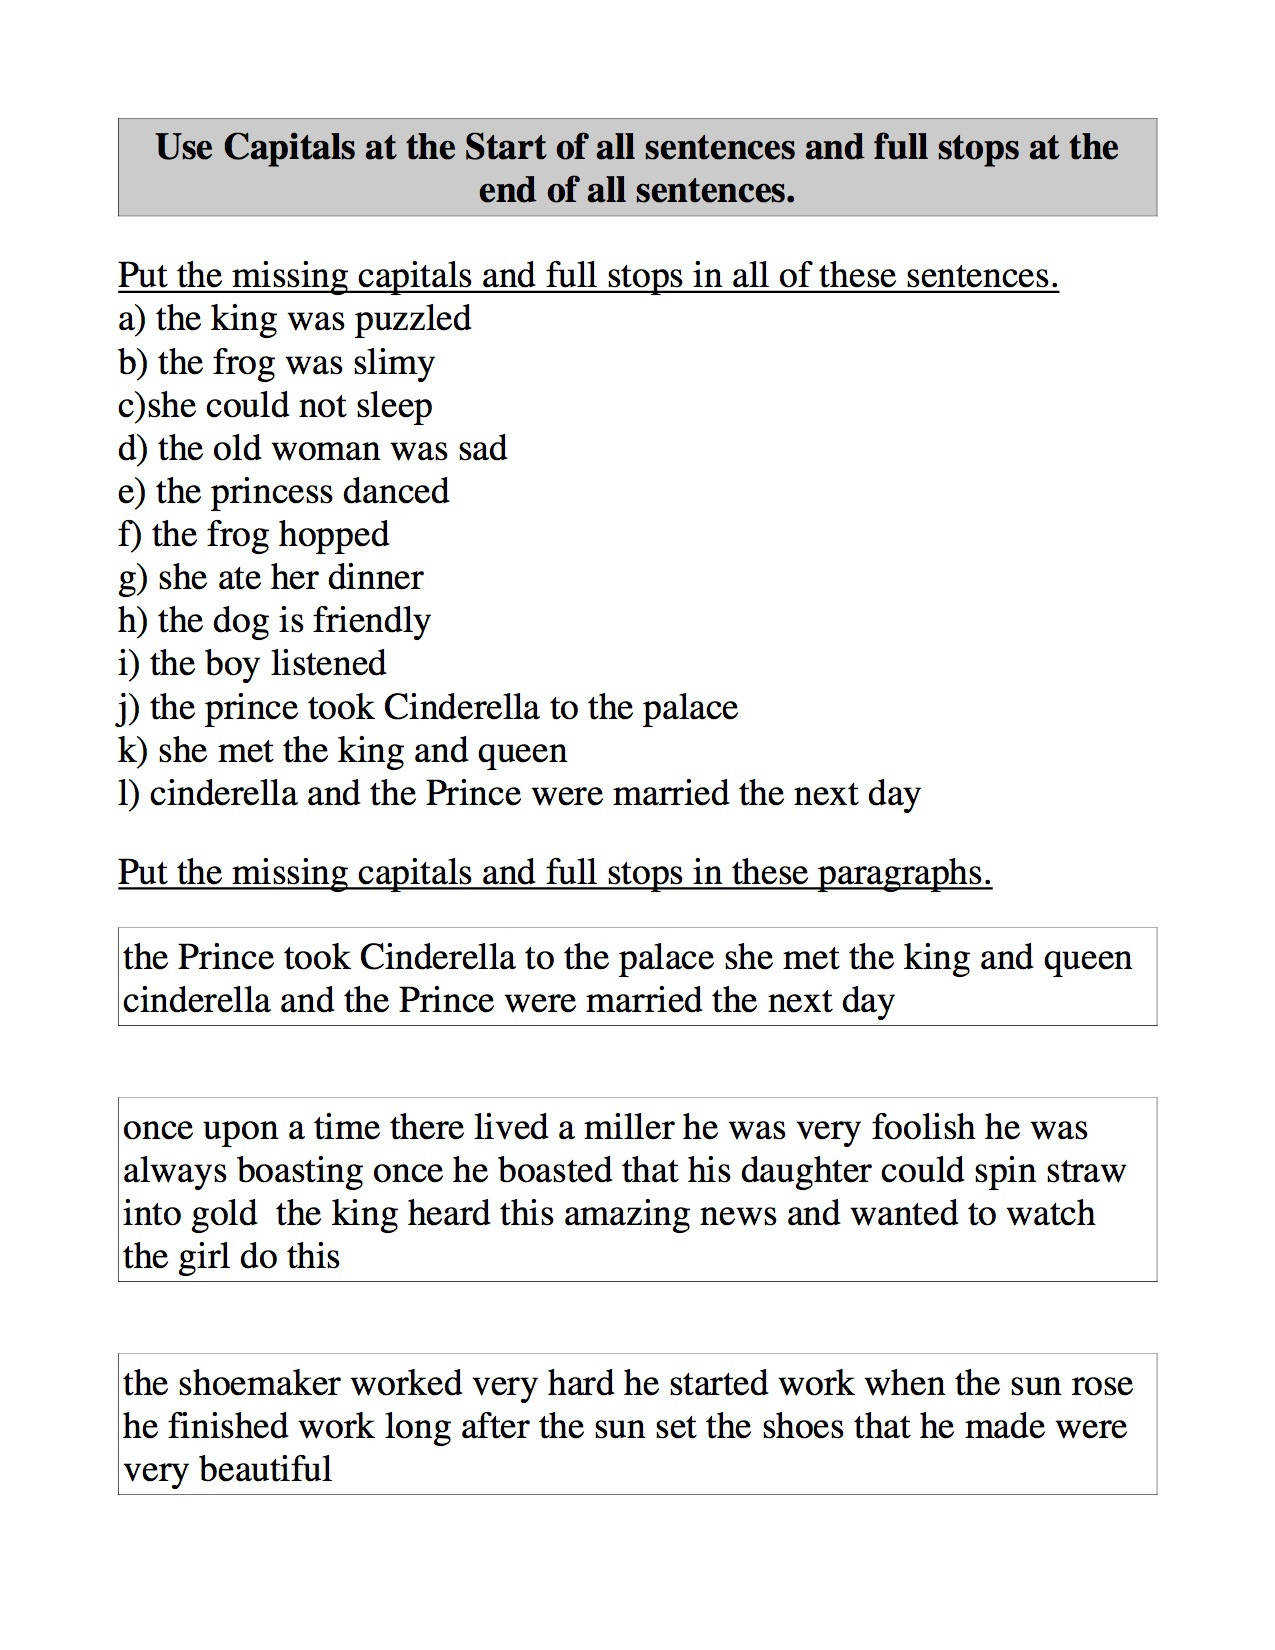 Use Capitals at the Start of all sentences and Full Stops at the End of all Sentences Worksheet